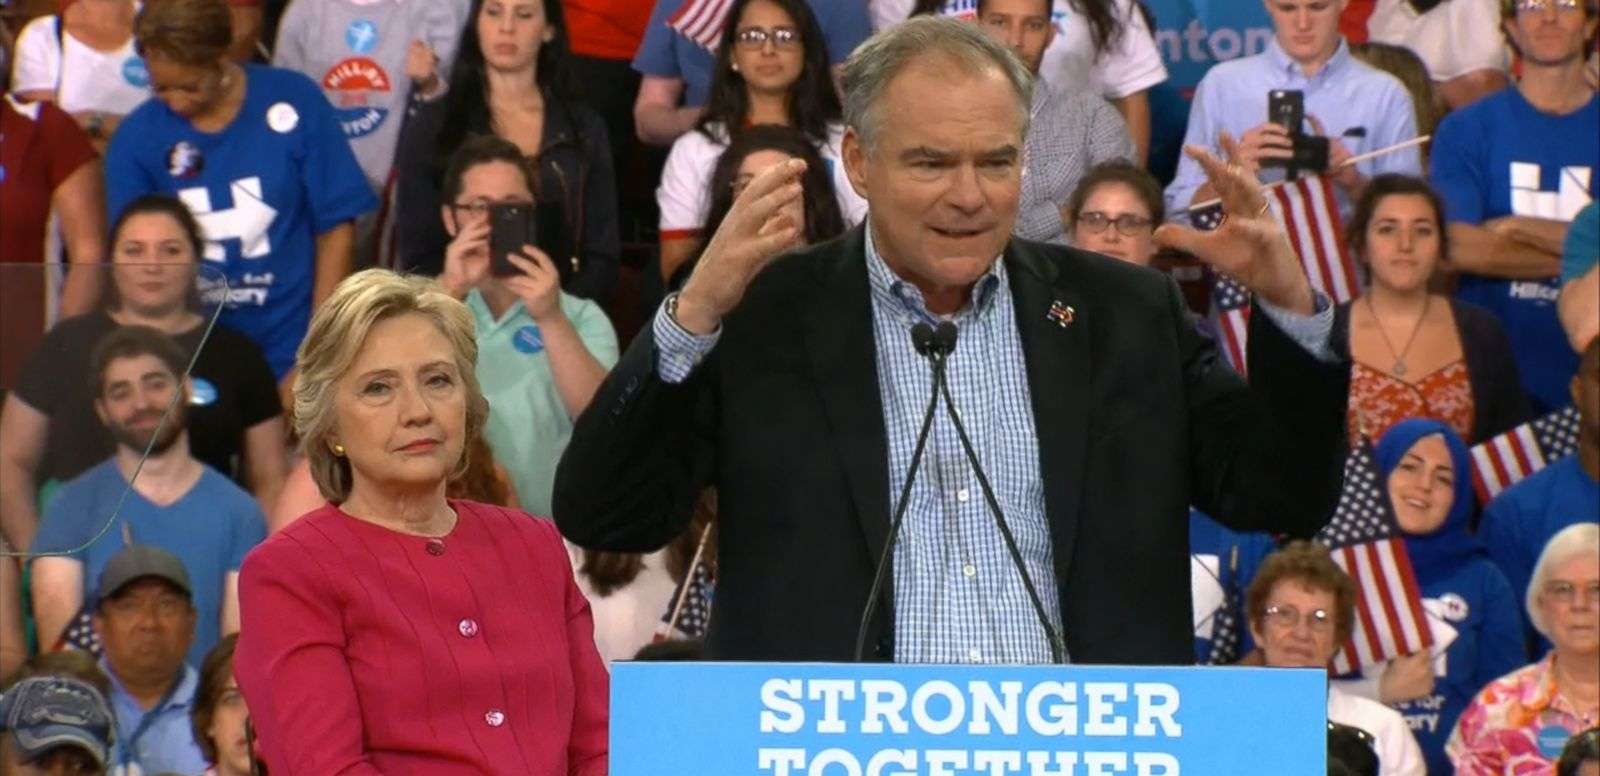 VIDEO: Sen. Tim Kaine warmed up the crowd for Hillary Clinton and attacked Trump at the same time.